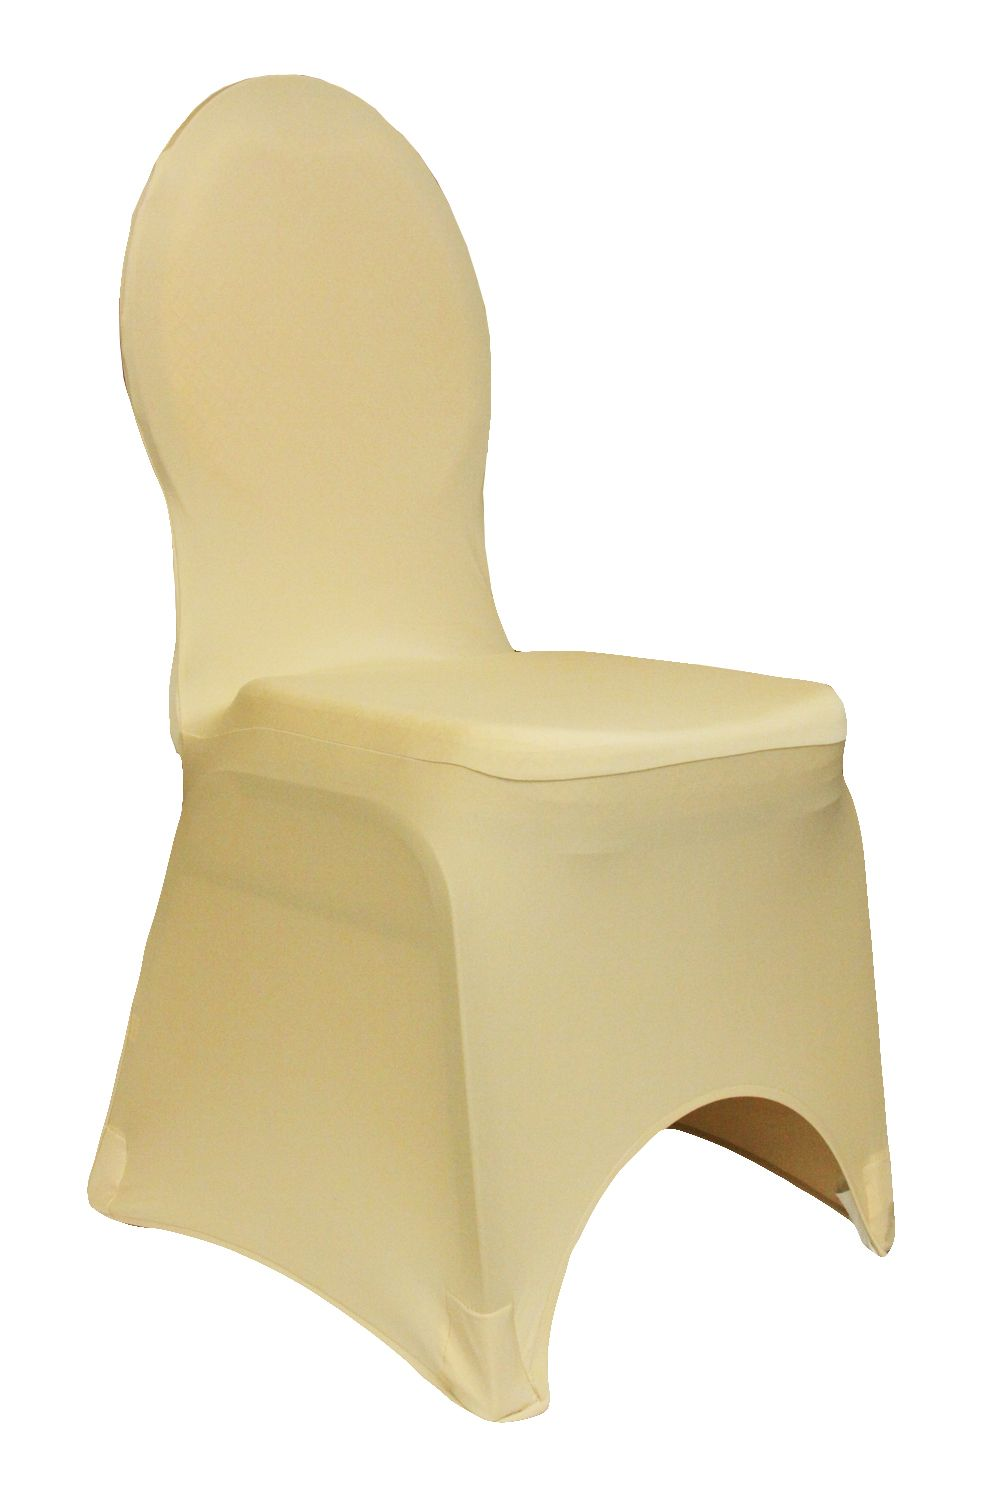 Spandex Banquet Chair Cover - Champagne www.cvlinens.com #wedding #event #party #chaircovers #spandex #stretch #champagne #tan #bodas #eventos #fiestas #sillas #covertores